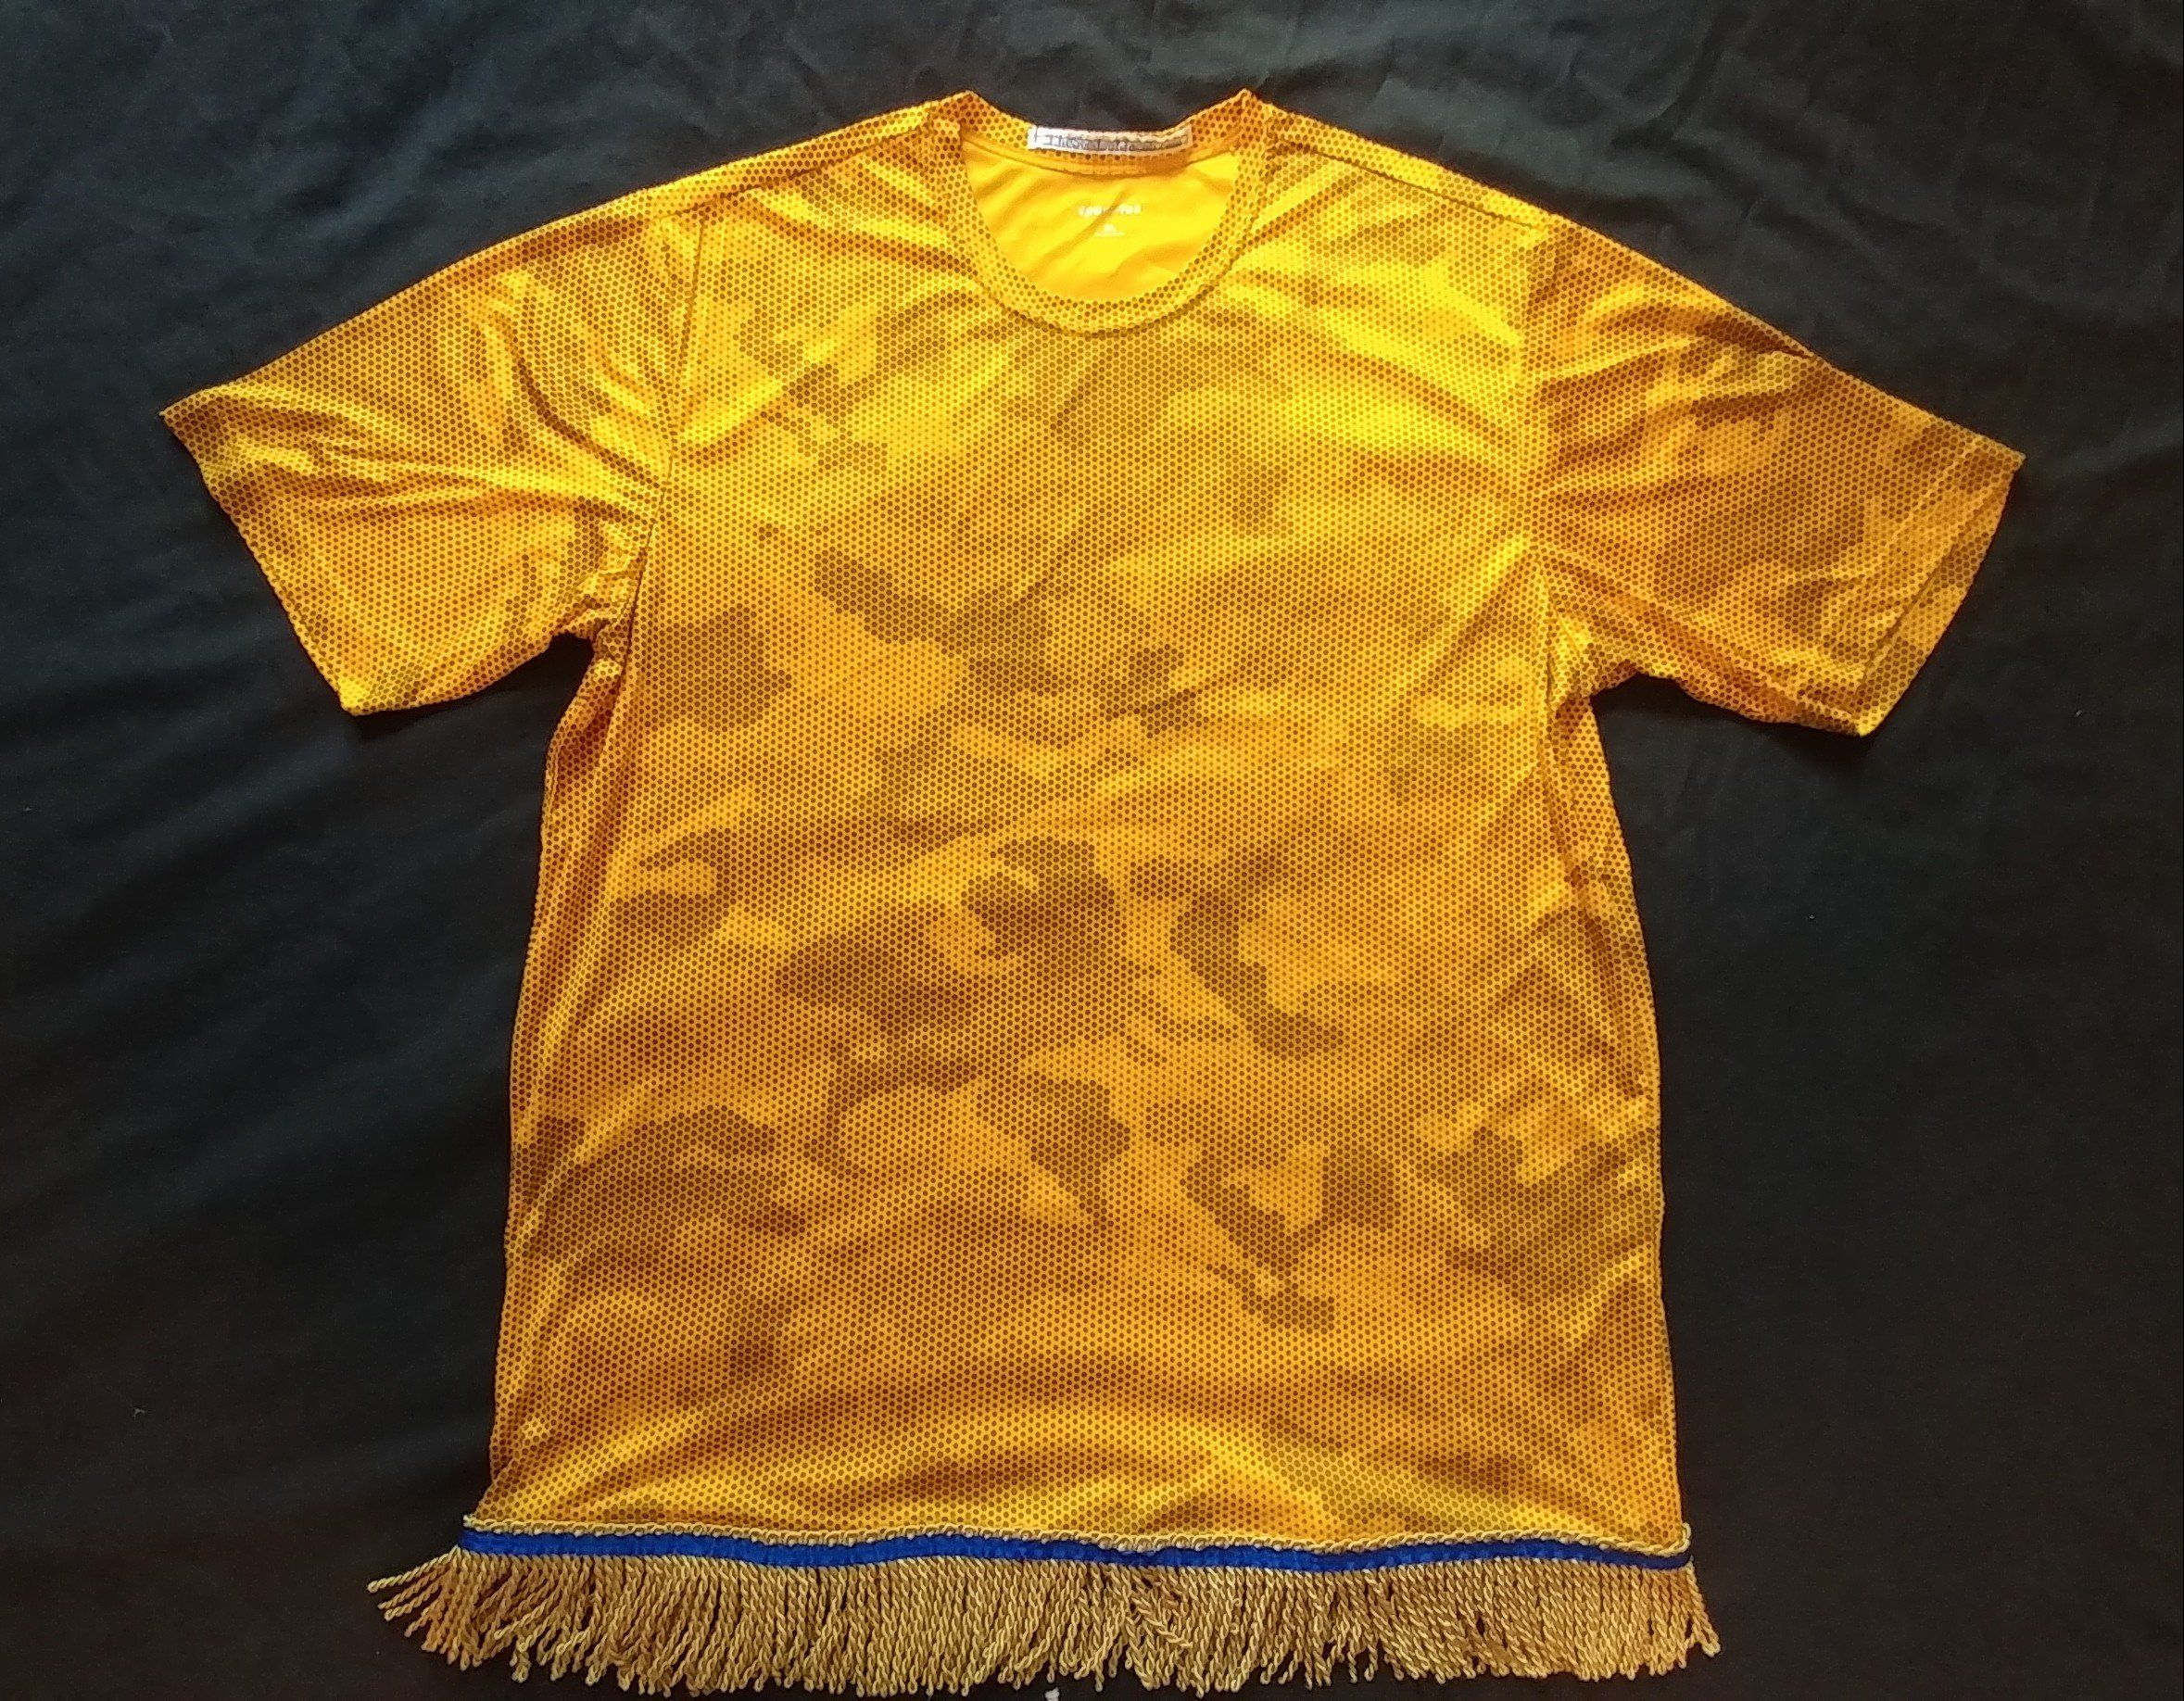 00d250130c10 100% Polyester ** ** Blue Ribbon double-stitched ** ** Premium Gold Fringes  ** ** Wear your fringes like you obey His Laws - EVERYDAY! ** ** NEW!!